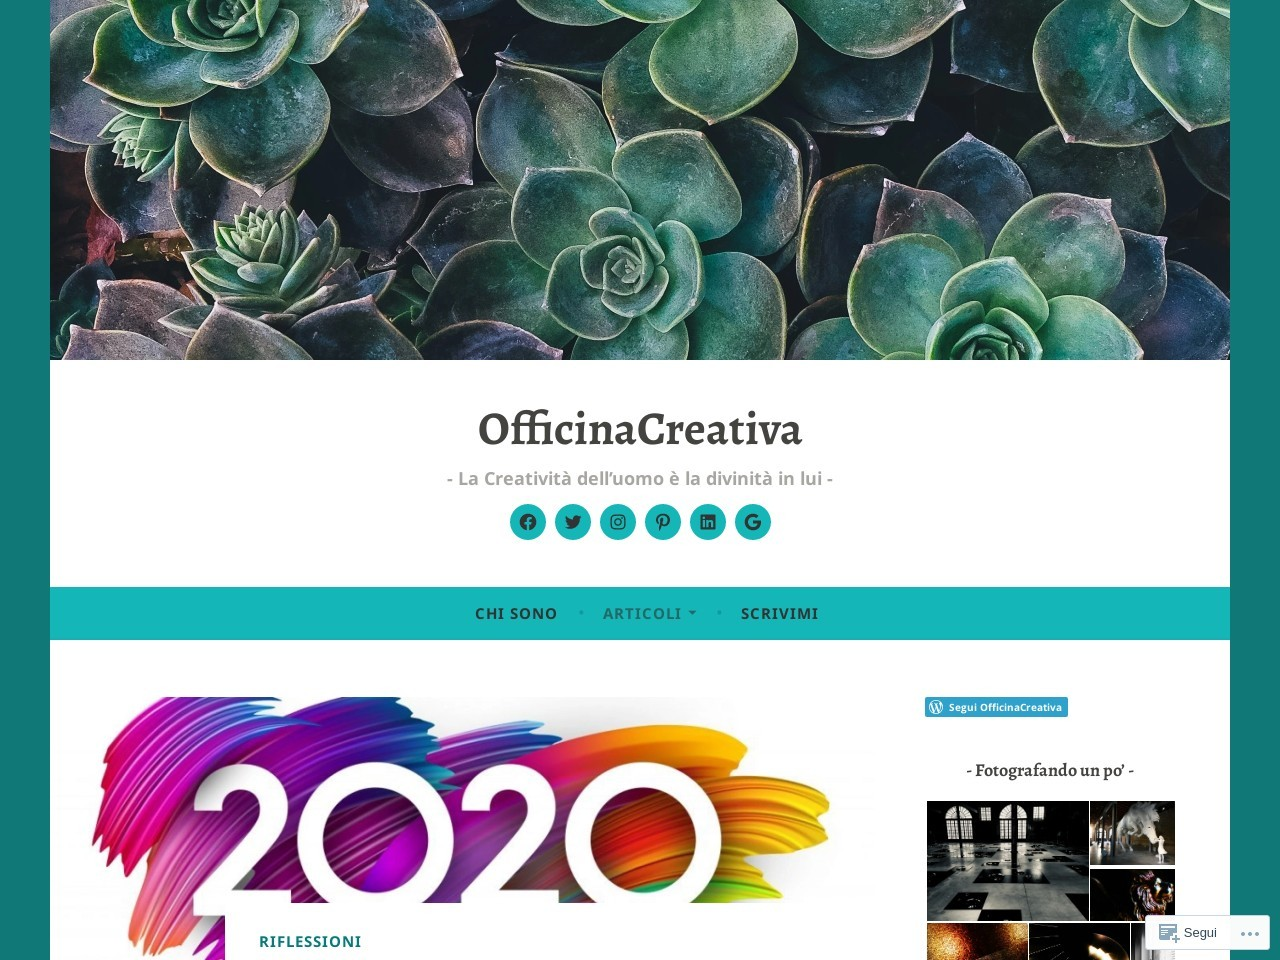 officinacreativa